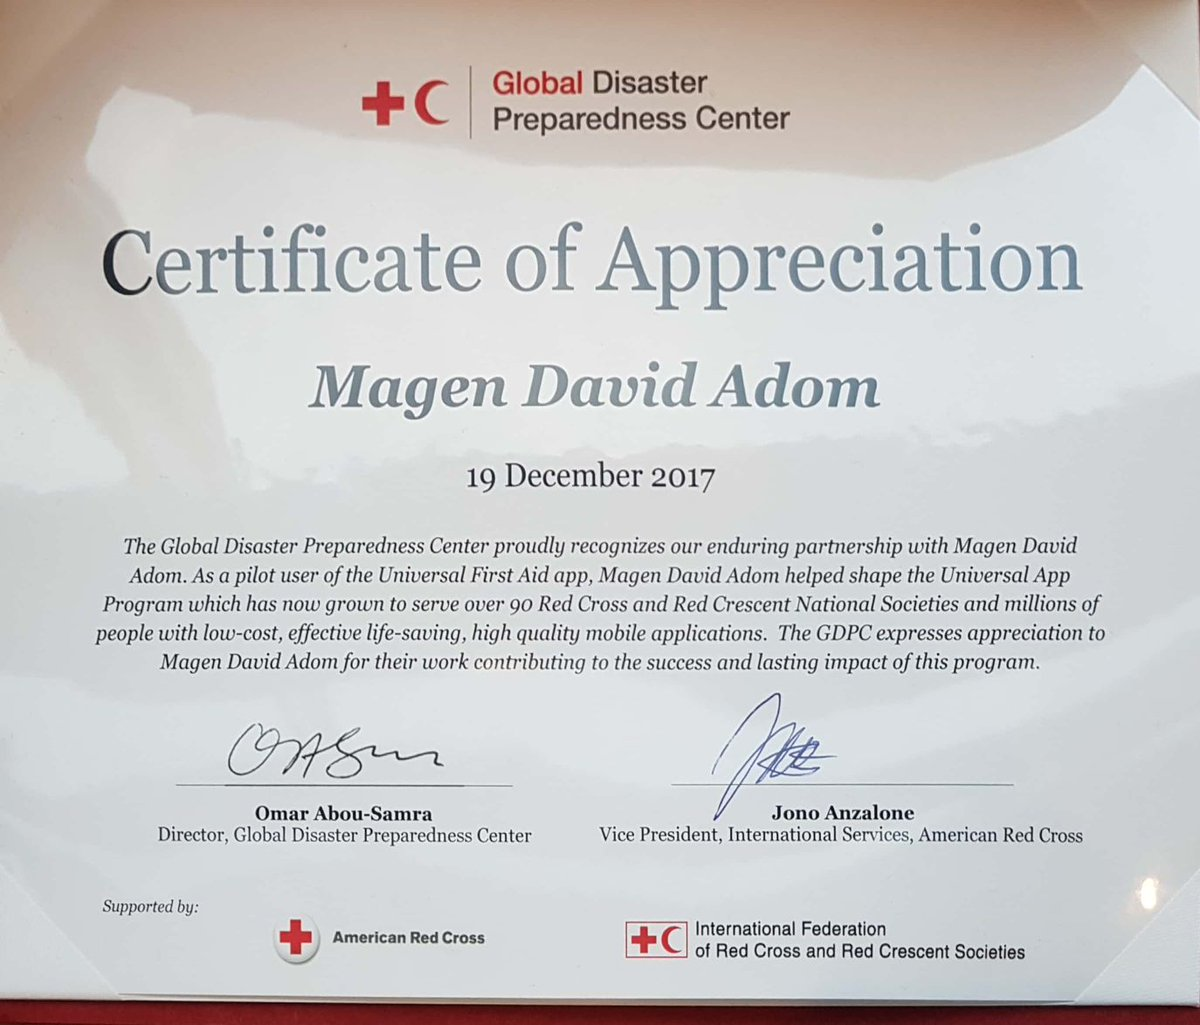 Magen david adom on twitter the global disaster preparedness the app is used by 90 red cross societies and millions of users redcarpetthurs icrc perrceventpicitteriltc3v6ele xflitez Images